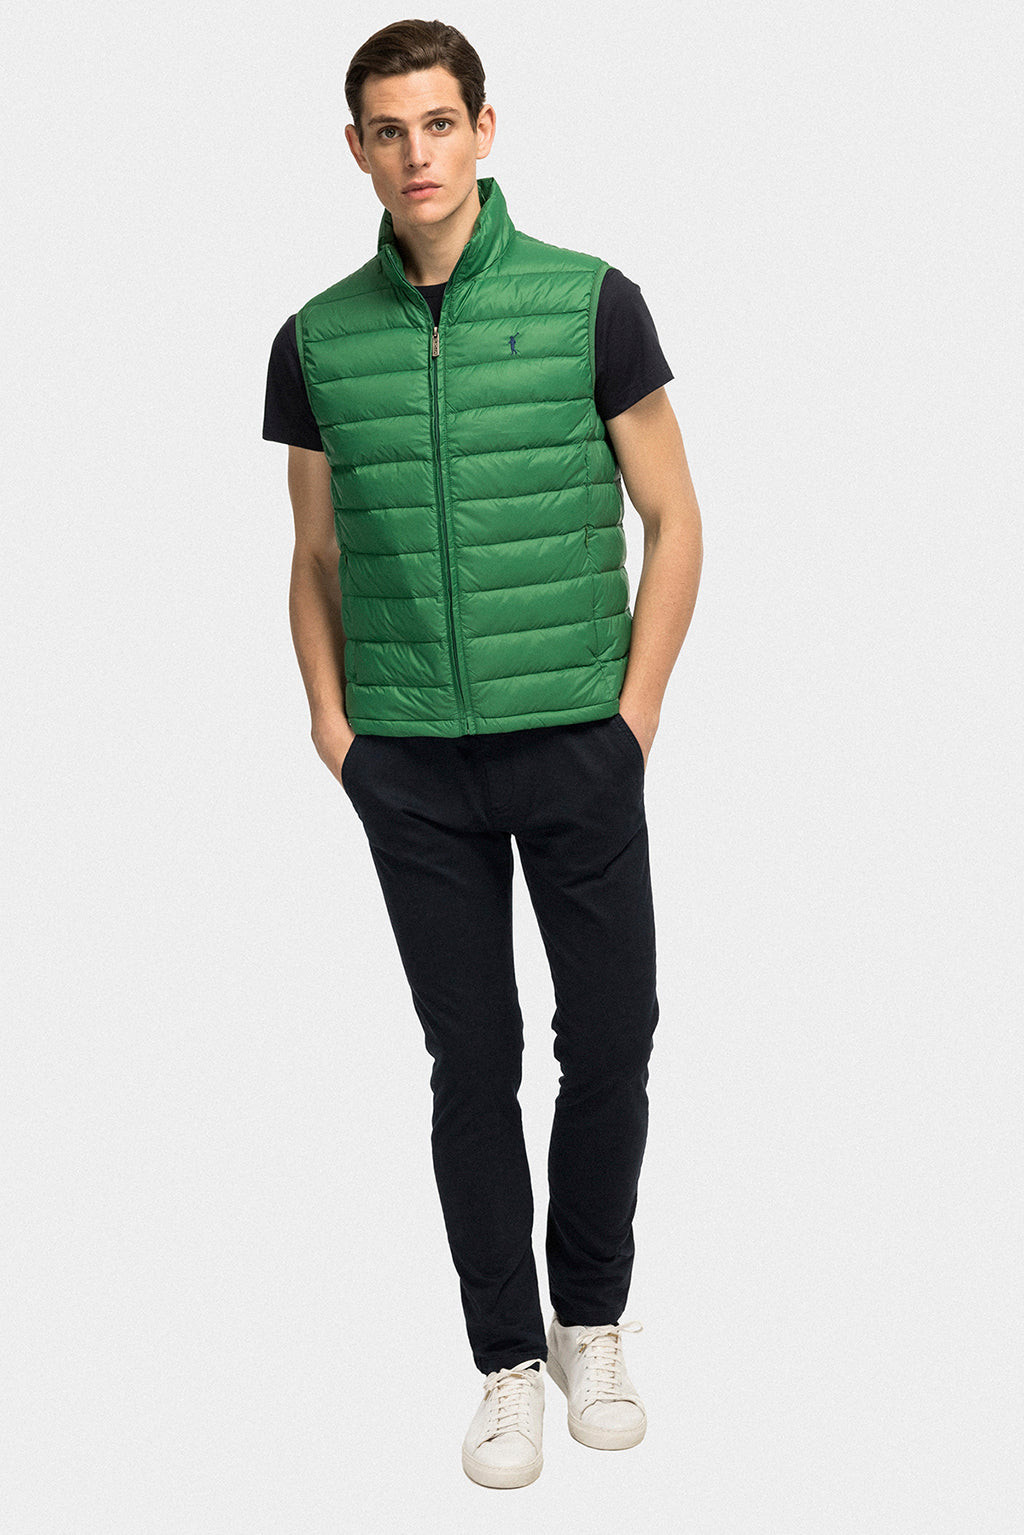 Green ultralight vest